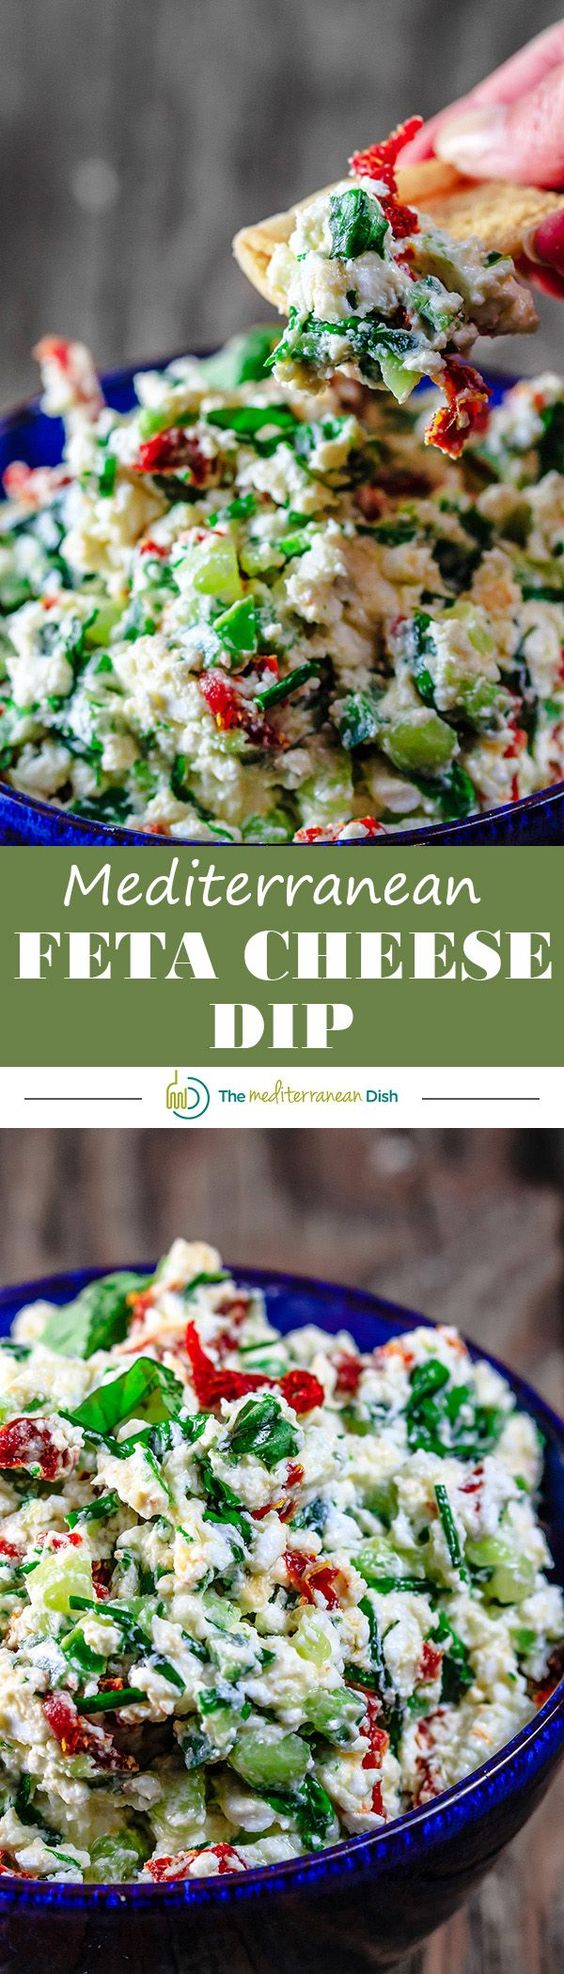 Mediterranean Feta Cheese Dip   The Mediterranean Dish. An impressive 5-minute cheese dip with feta, fresh basil, chives, sun-dried tomatoes! Make it for game day or your next party! #dips #ComfortFoodFeast